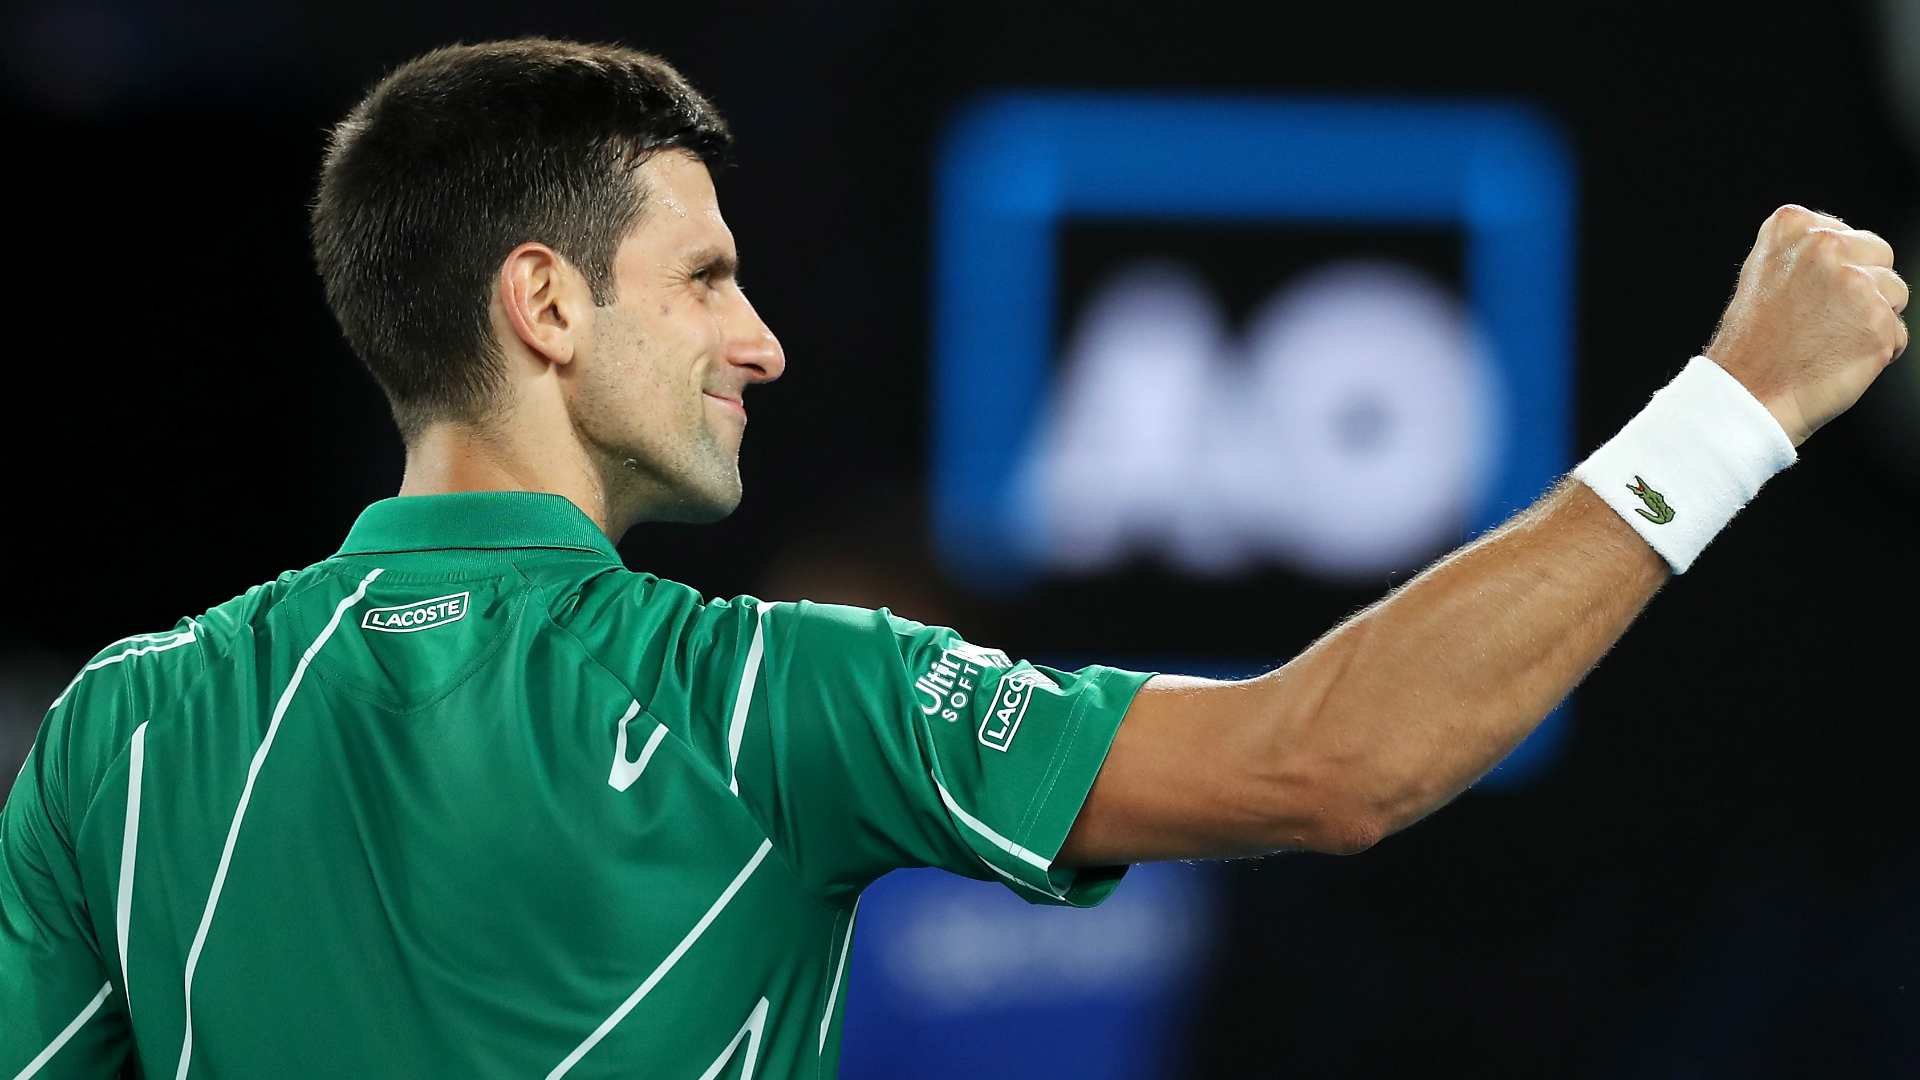 Australian Open 2020: Djokovic to 'enjoy every moment' after win, Shapovalov crashes out